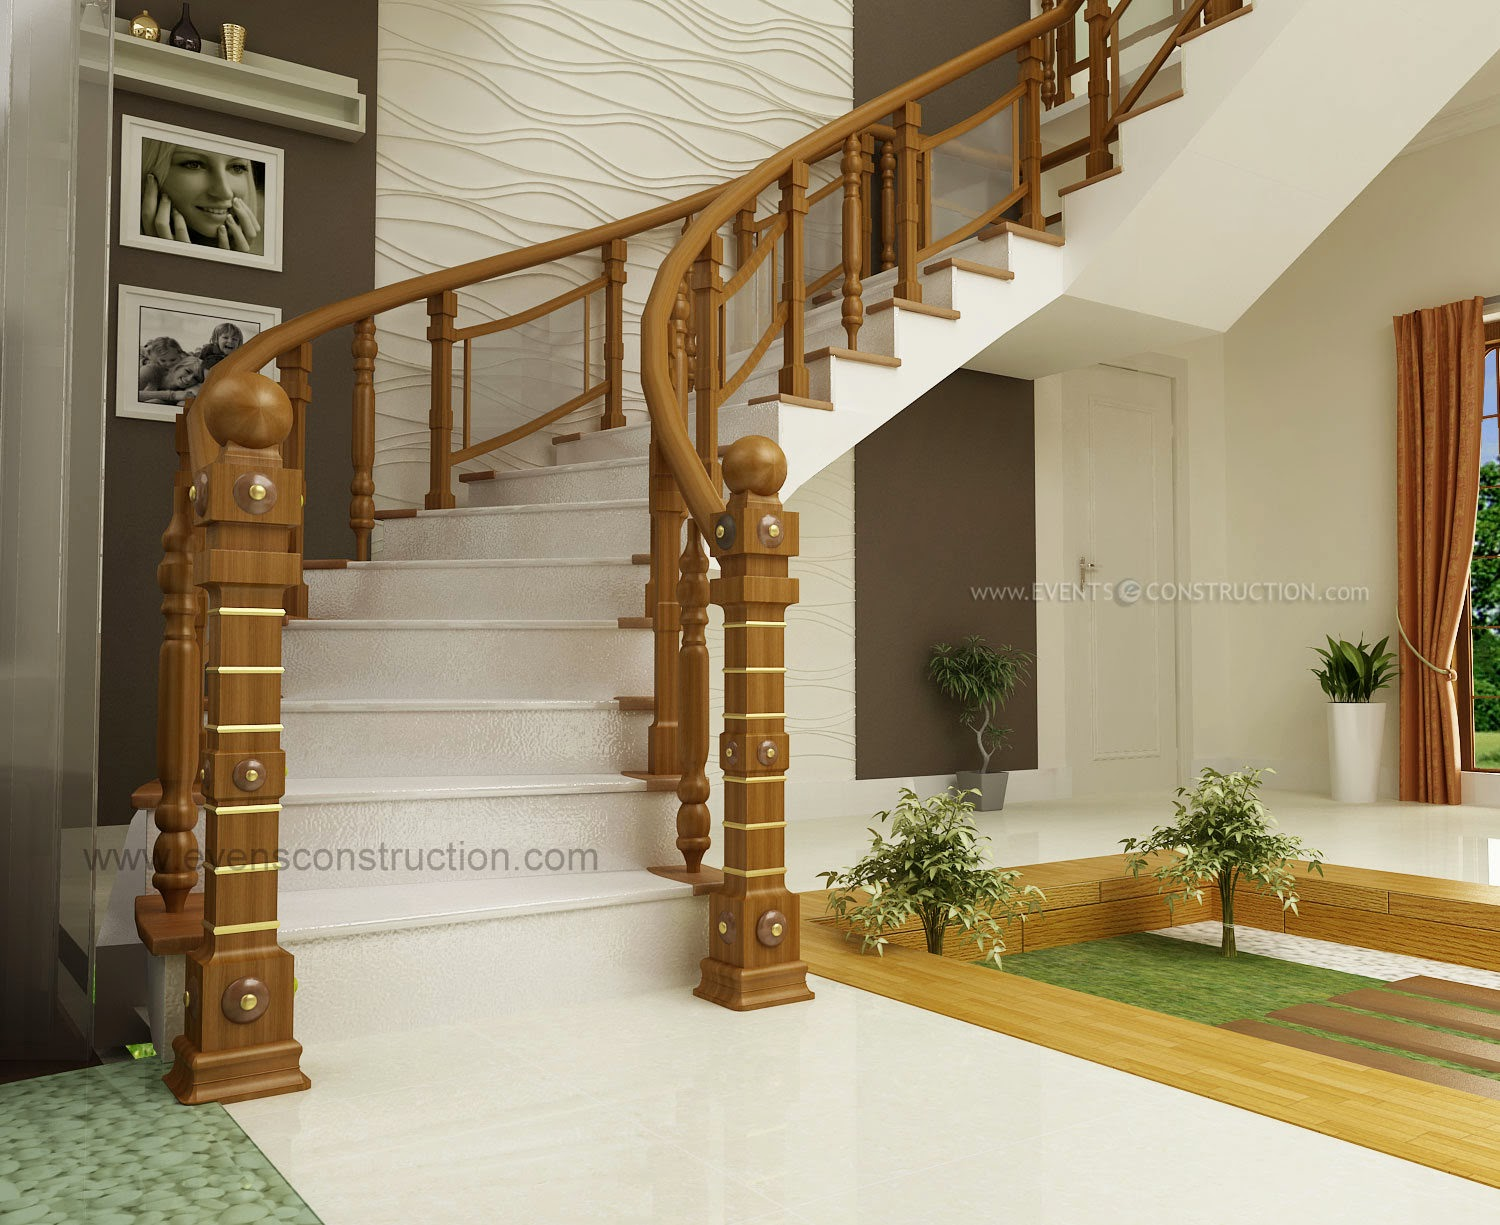 Wooden handrail design living room interiors pdf - Bed room house plan with stairs ...